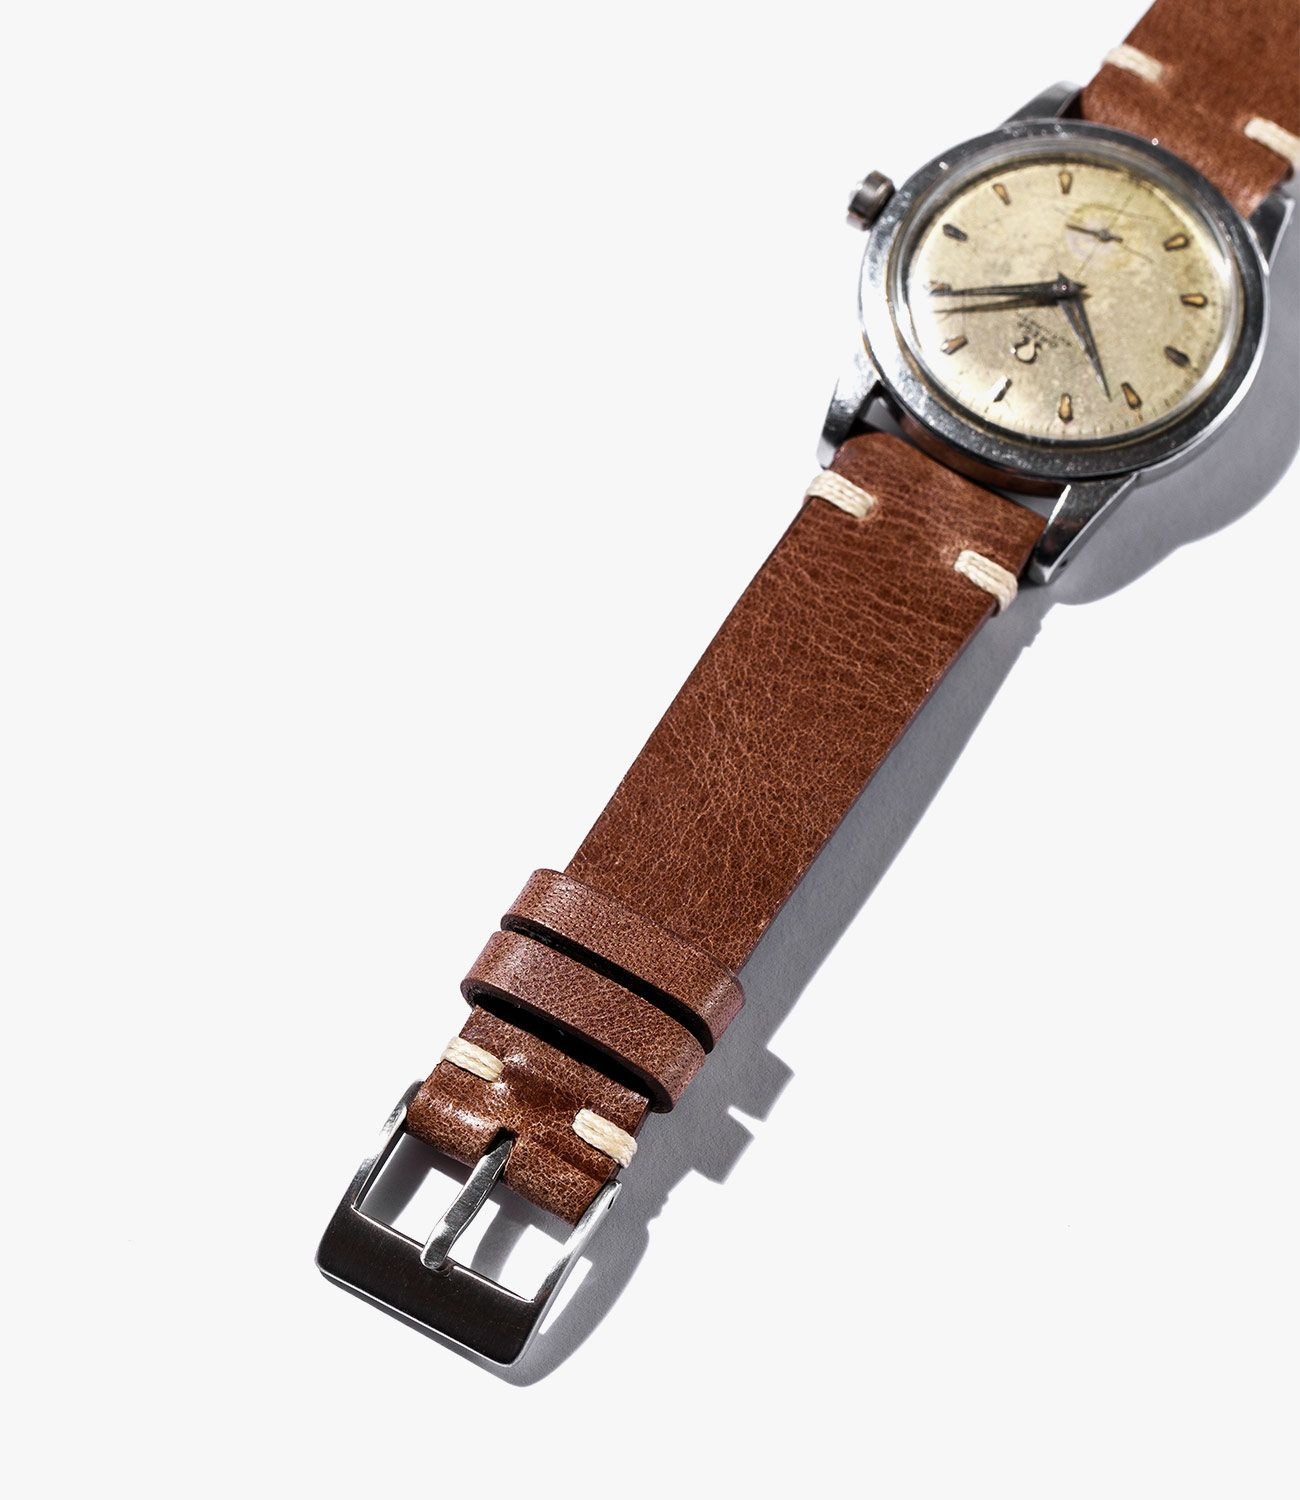 Leather-Watch-Bands-gear-patrol-Crown-and-Buckle-Brown-slide-2